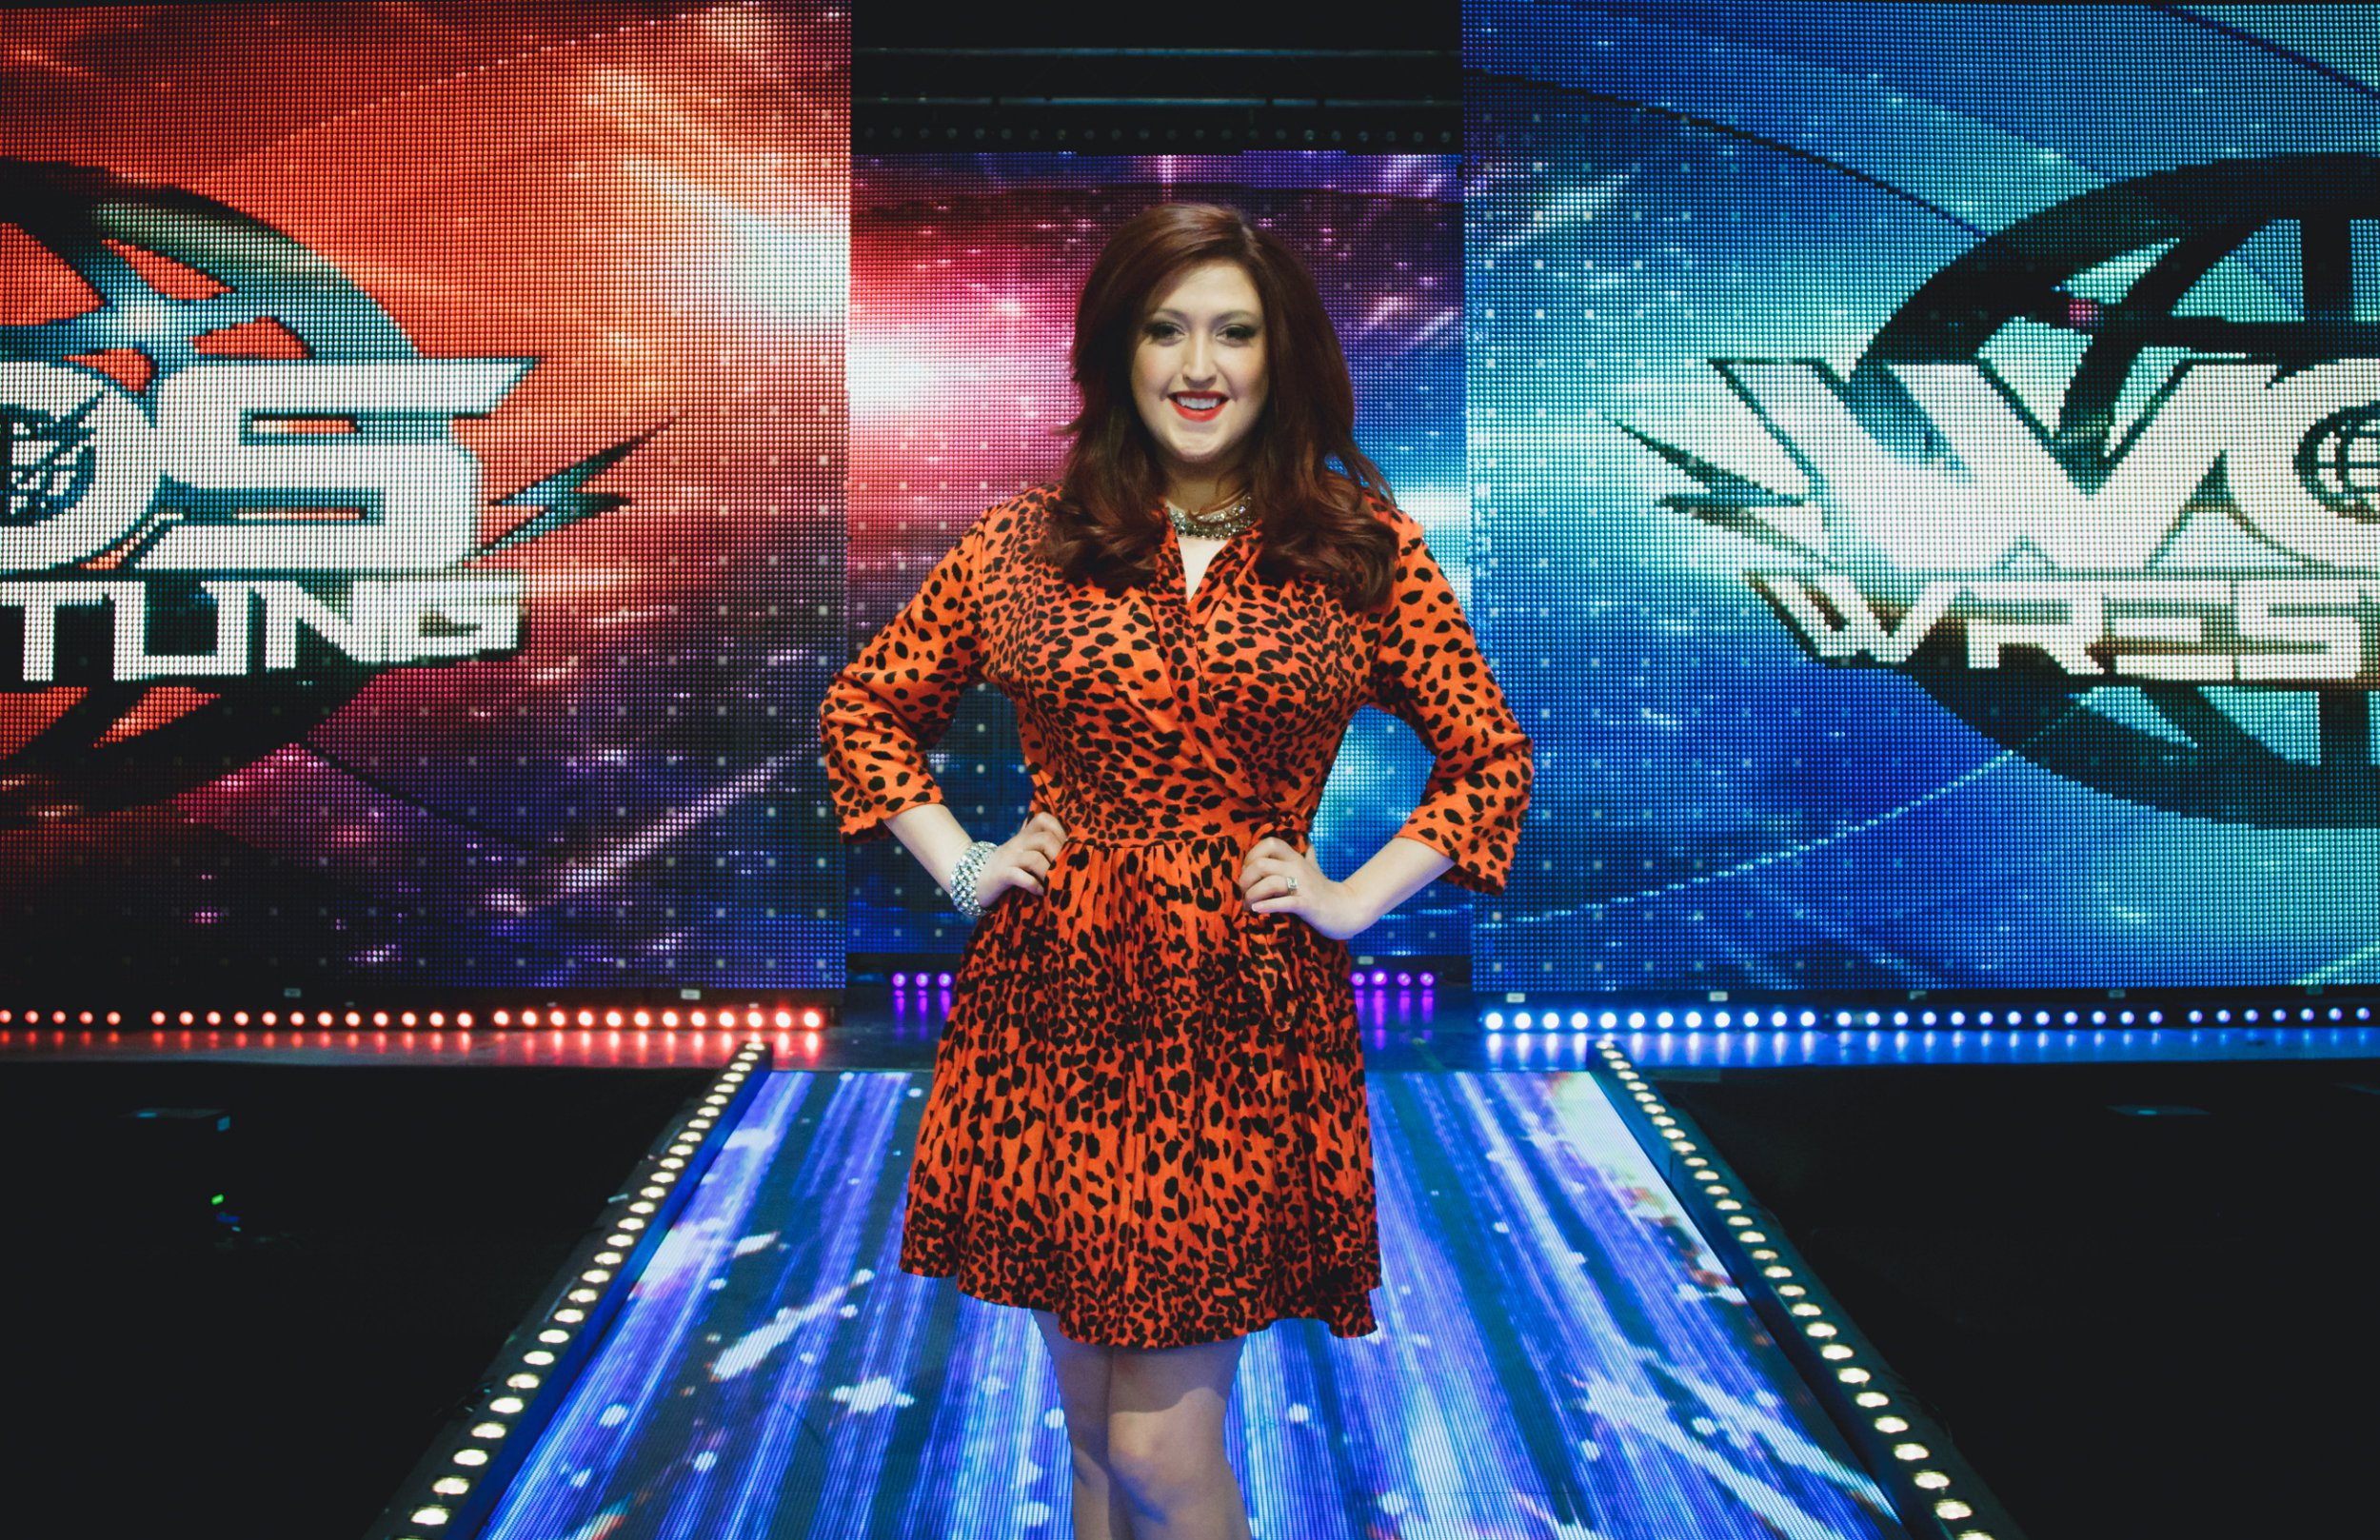 This image is strictly embargoed from publication until 00.01 Tuesday 24th July 2018 From ITV Studios Daytime WOS WRESTLING From Saturday 28th July 2018 on ITV Pictured: Commentator SoCal Val WOS Wrestling makes its triumphant return to ITV this month. The high-octane series was commissioned by ITV Studios Daytime, offering an hour?s worth of heart-pumping action on Saturday evenings. It will be jam-packed with the UK?s top names in the sport ? including Grado, Viper, Rampage and Will Ospreay - competing in a fun-filled evening of family sports entertainment. Recorded in front of a lively audience at studios in Norwich, fans will get to see some of the finest pro wrestlers compete in various, intense bouts including those for the WOS Male Championship title, WOS Women's Championship title and Tag Team Champions Title. Rachel Stringer will bring us backstage interviews with the wrestling stars between matches. Commentating on the highly anticipated battles will be stand-out stars of the wrestling world Stu Bennett, Alex Shane and SoCal Val. ? ITV For further information please contact Iwona Karbowska 0207 157 3043 iwona.karbowska@itv.com This photograph is ? ITV and can only be reproduced for editorial purposes directly in connection with the programme mentioned above or ITV. Once made available by the ITV Picture Desk, this photograph can be reproduced once only up until the Transmission date and no reproduction fee will be charged. Any subsequent usage may incur a fee. This photograph must not be syndicated to any other publication or website, or permanently archived, without the express written permission of ITV Picture Desk. Full terms and conditions are available on the website www.itvpictures.co.uk